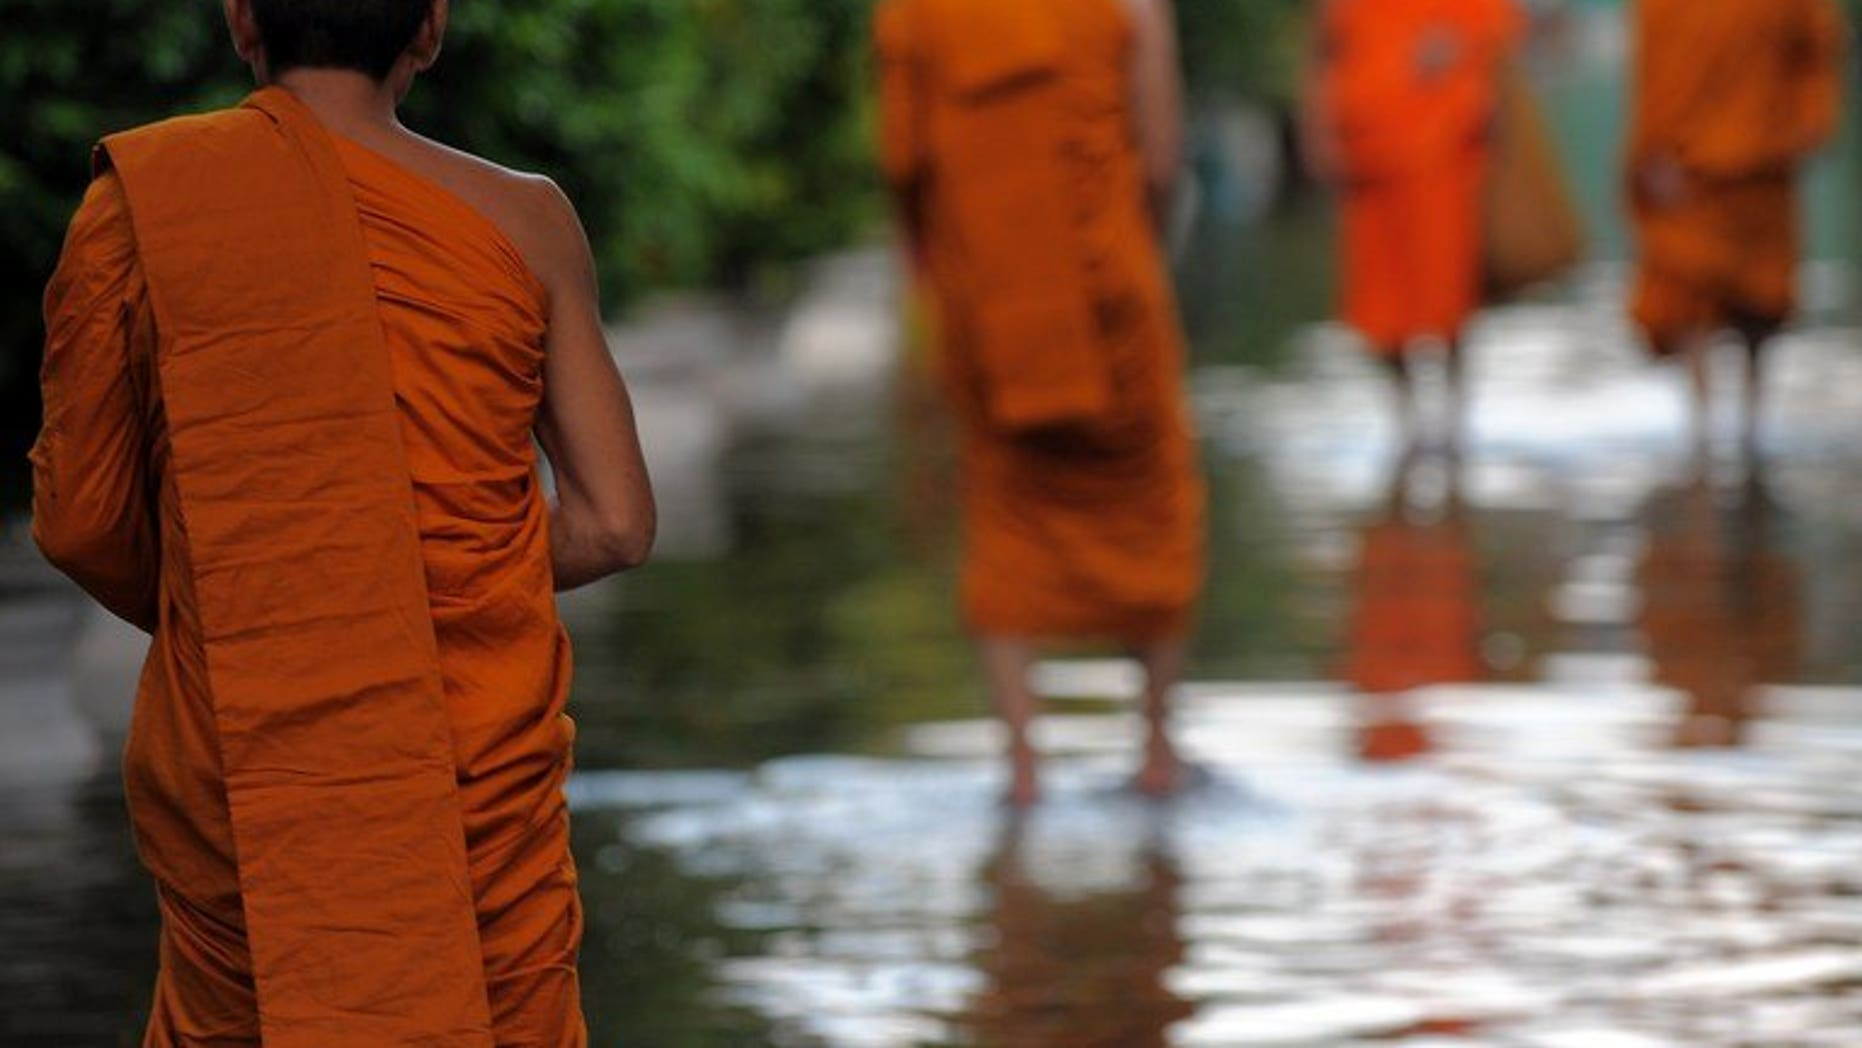 Thai Buddhist monks walk through floodwaters at a pagoda in Bangkok on October 27, 2011. Thai police said Wednesday they had arrested two monks for procuring a 14-year-old boy to perform sexual acts with an abbot, in the latest scandal to shake the kingdom's Buddhist clergy.